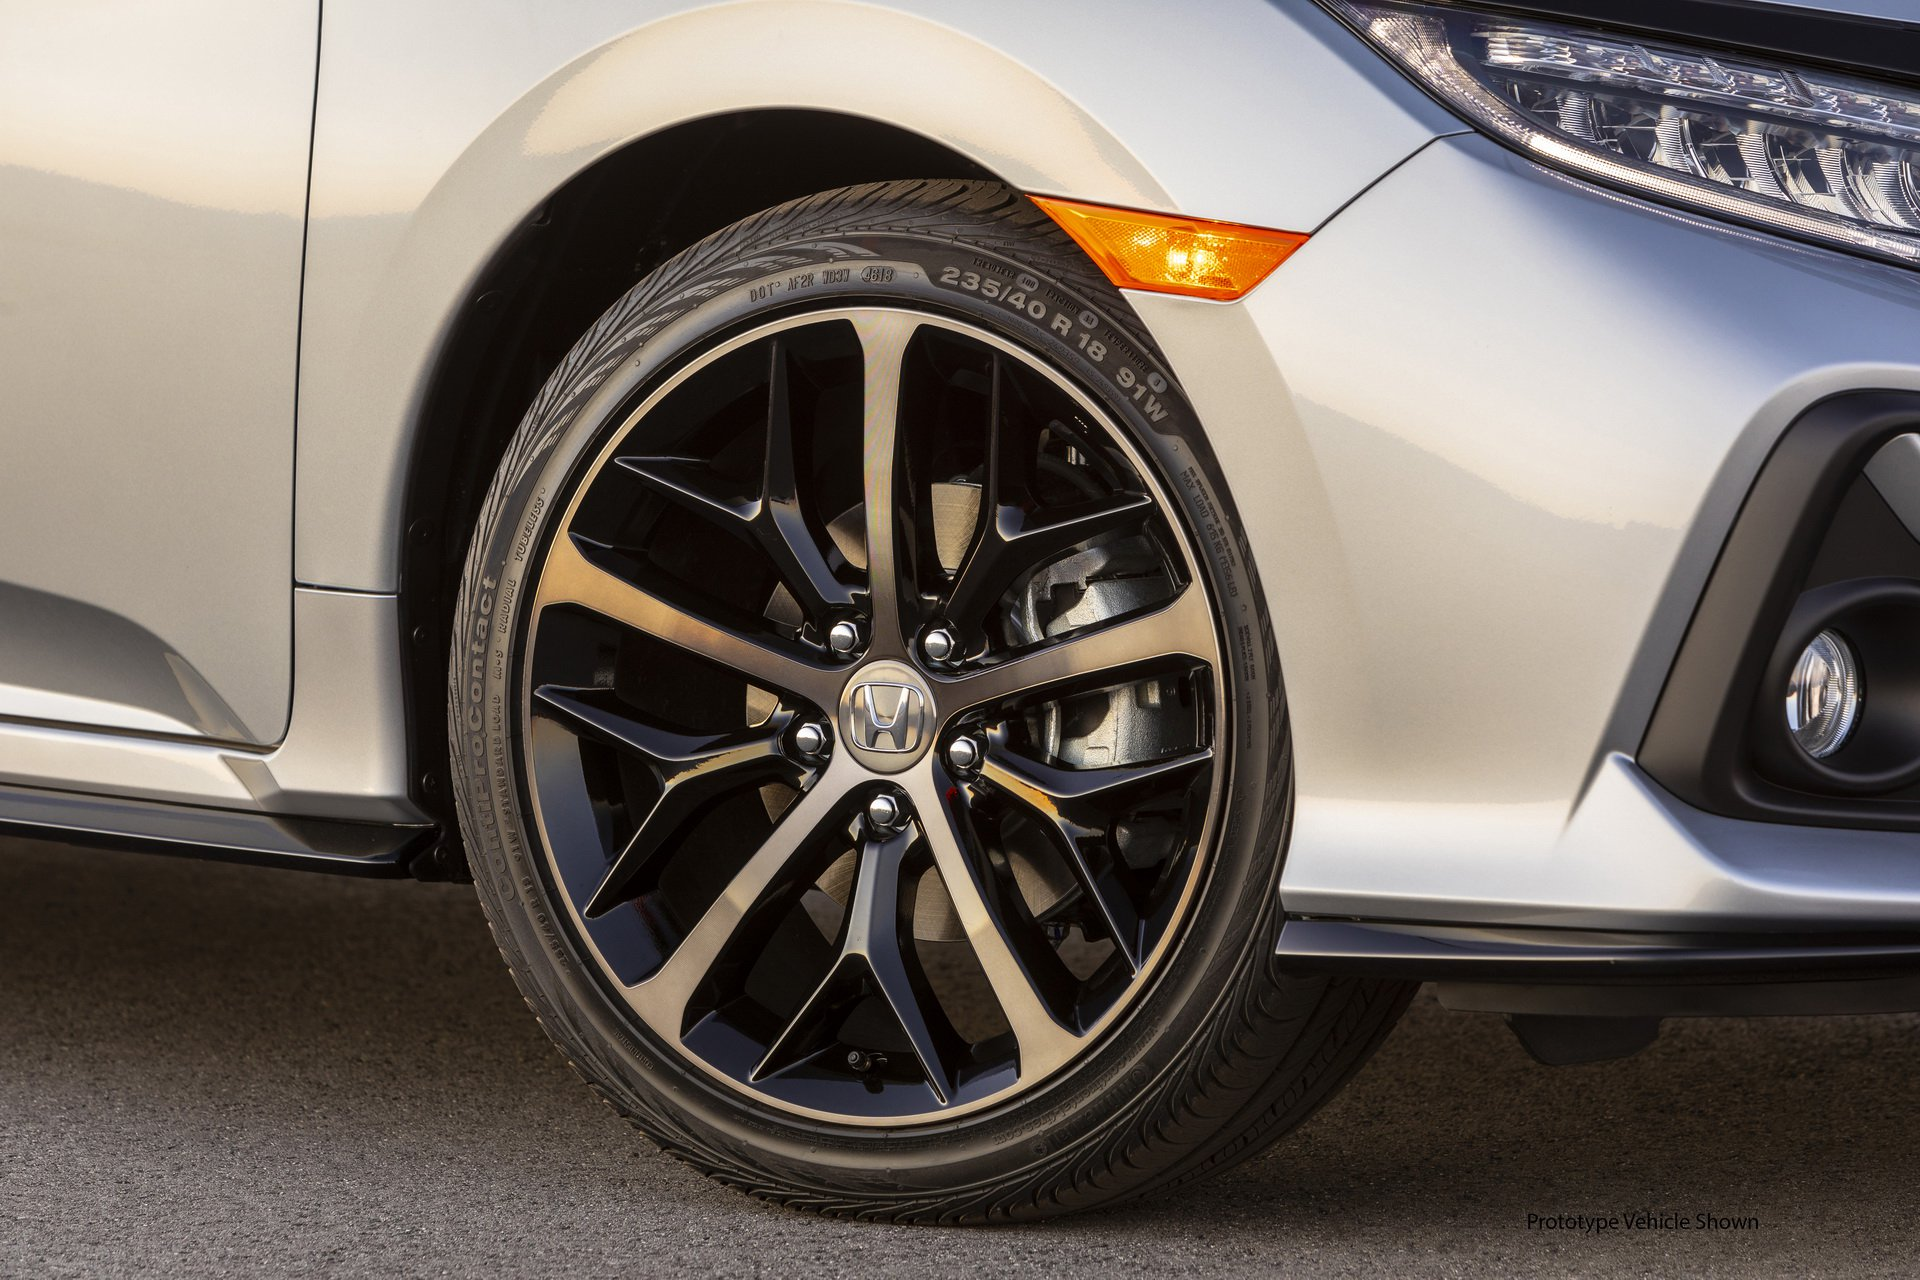 Honda Civic Hatchback Now Offers Manual Transmission on Its Highest Trim